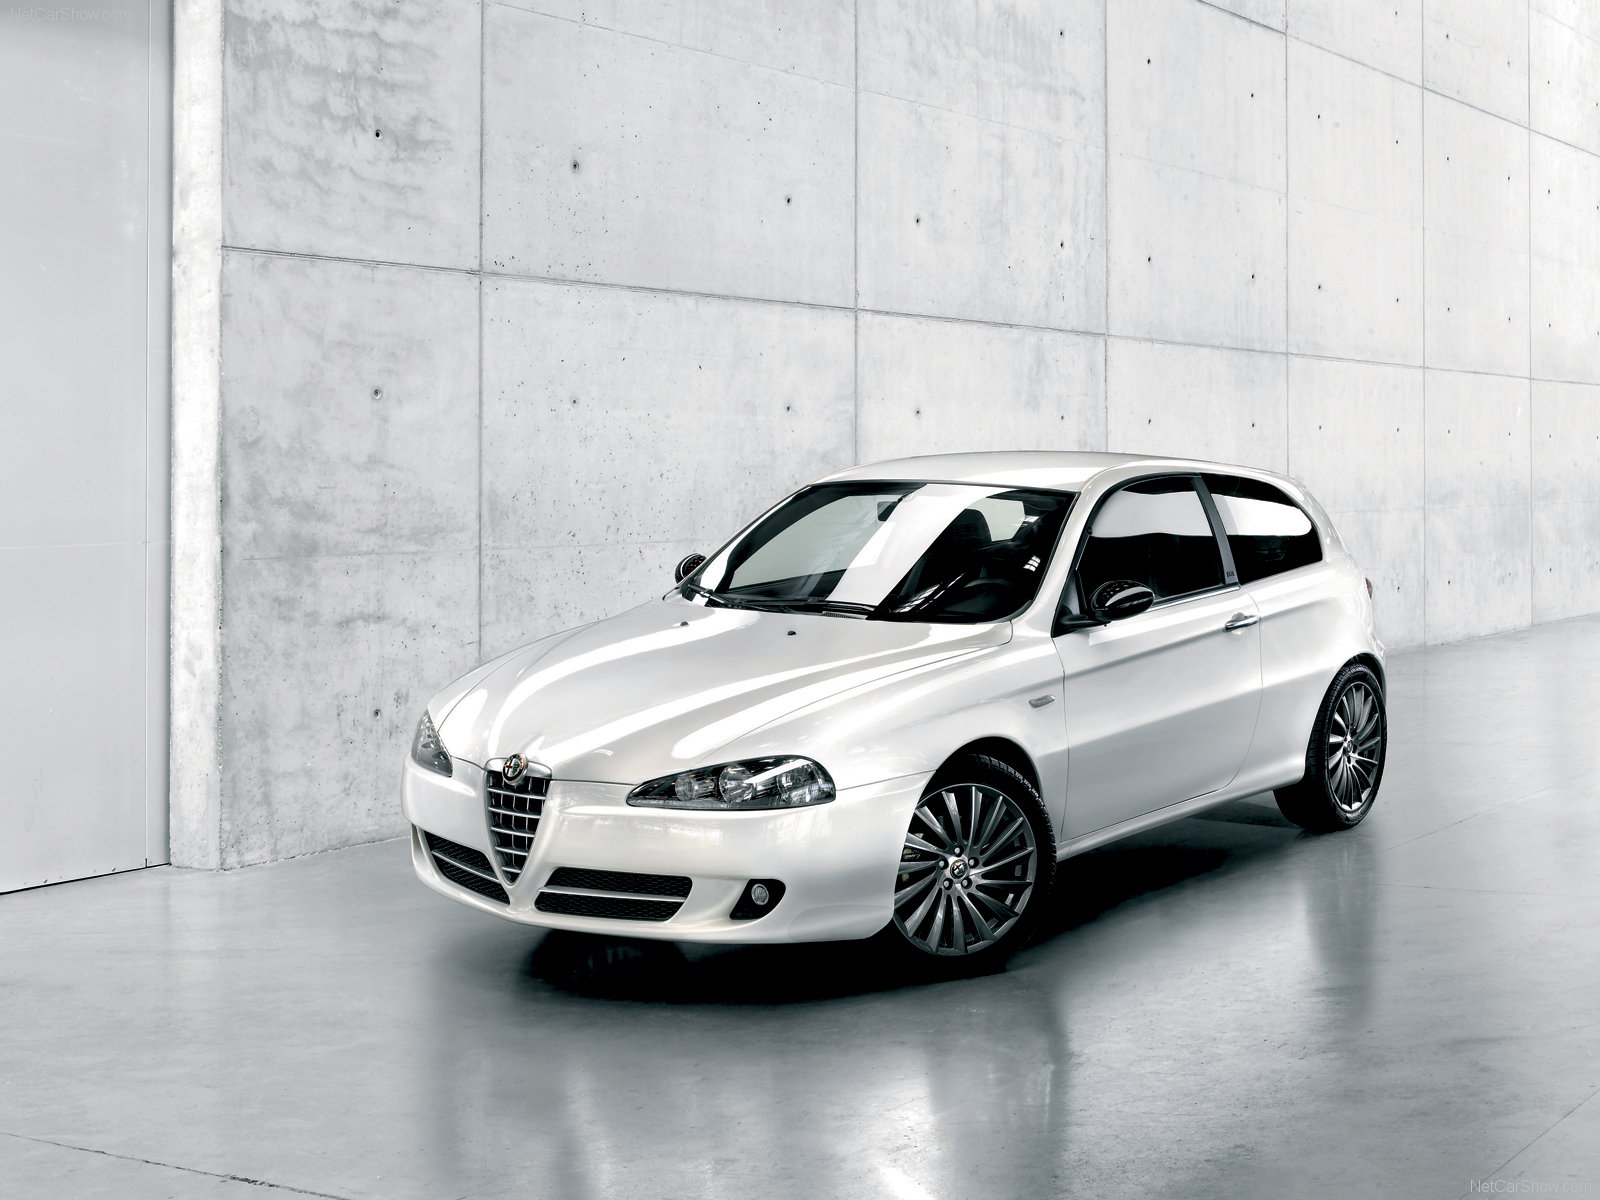 Alfa Romeo 147 CnC photo 46939